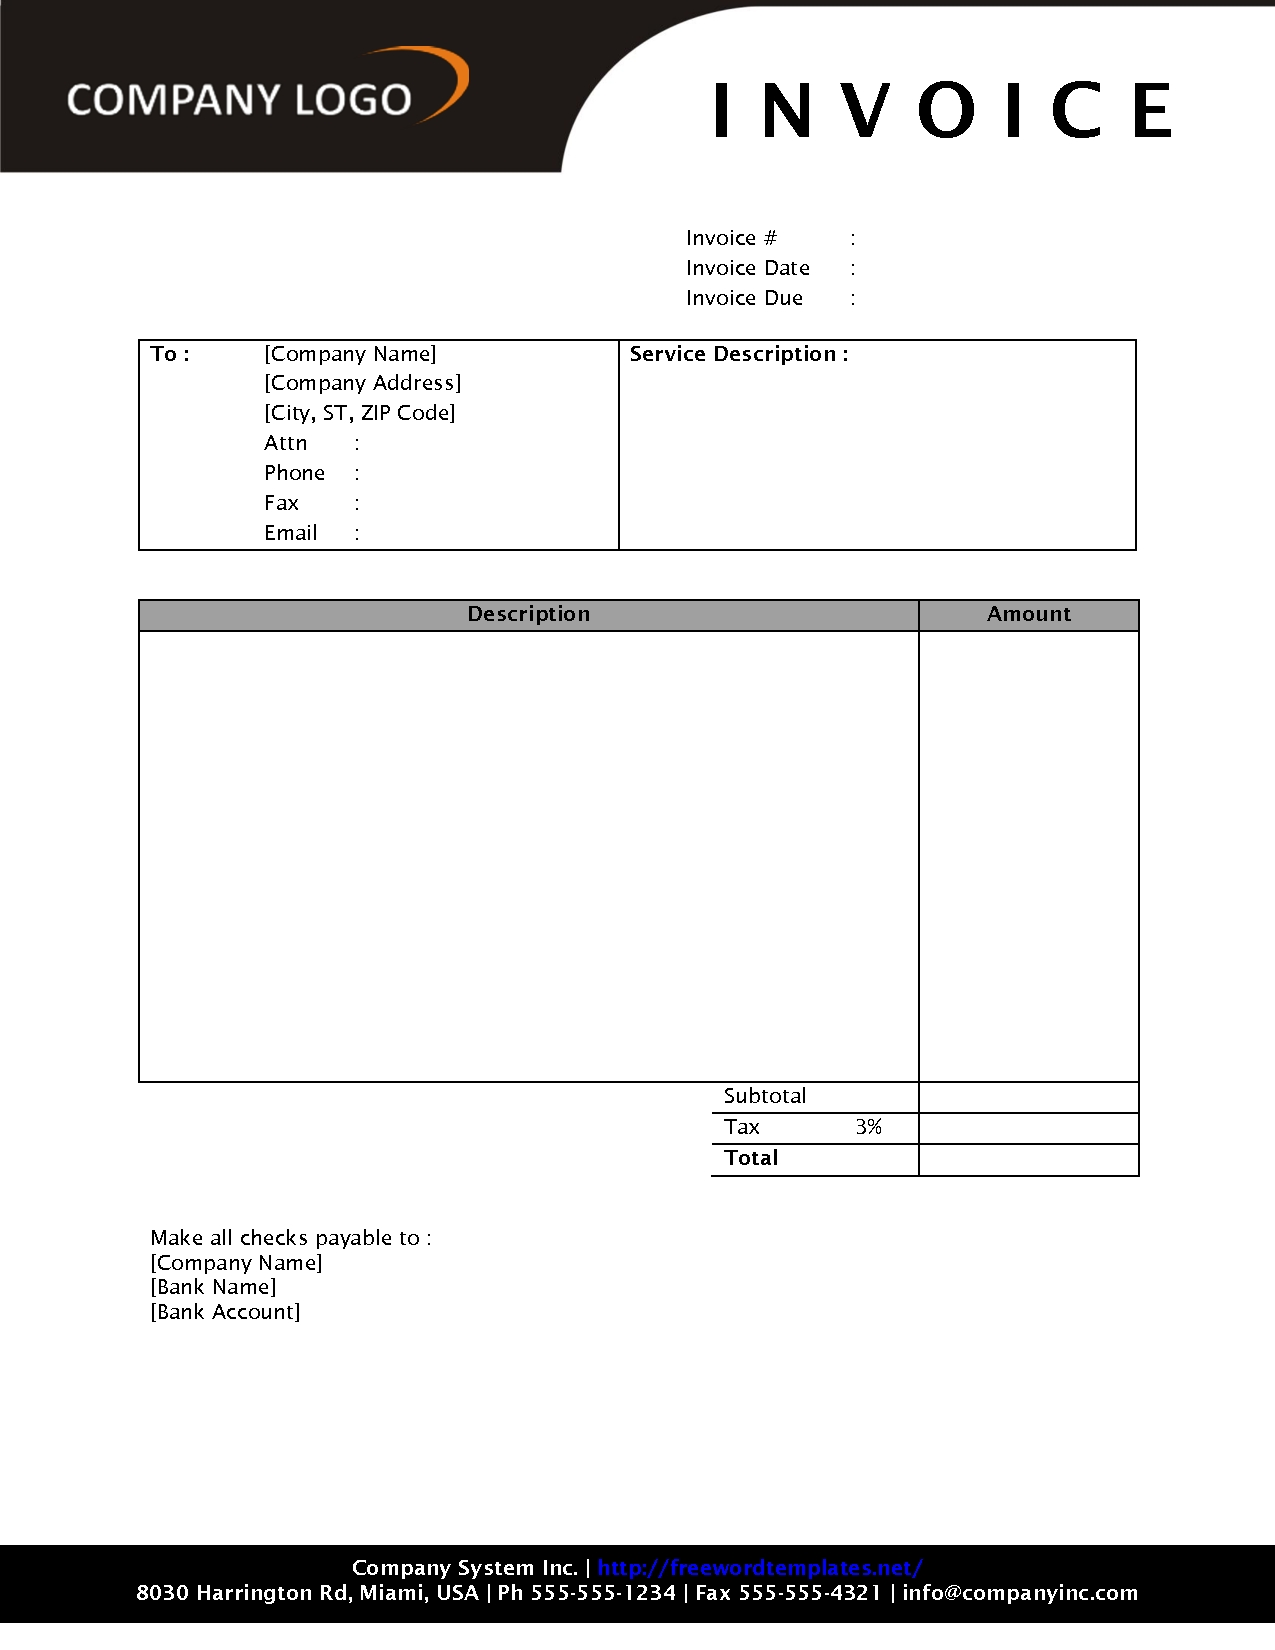 download invoice templates downloadable invoice template free invoice template 1275 X 1650